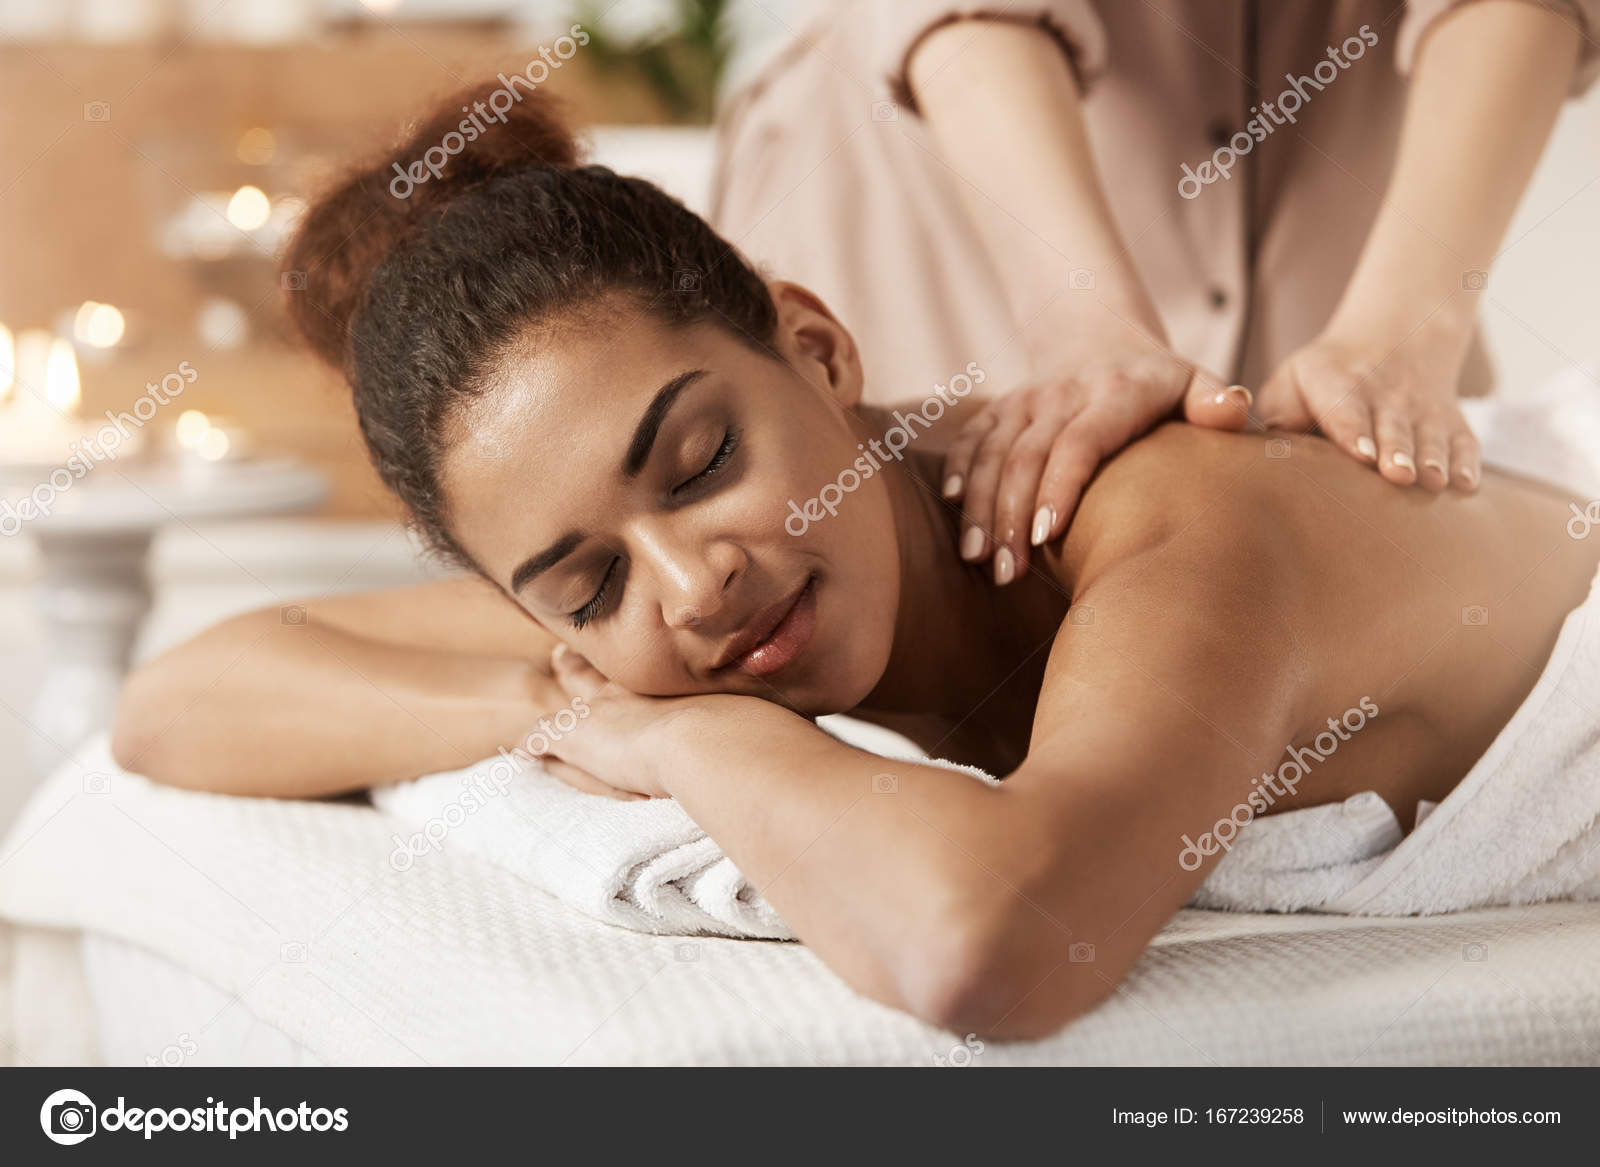 attractive african girl having massage relaxing in spa salon. closed